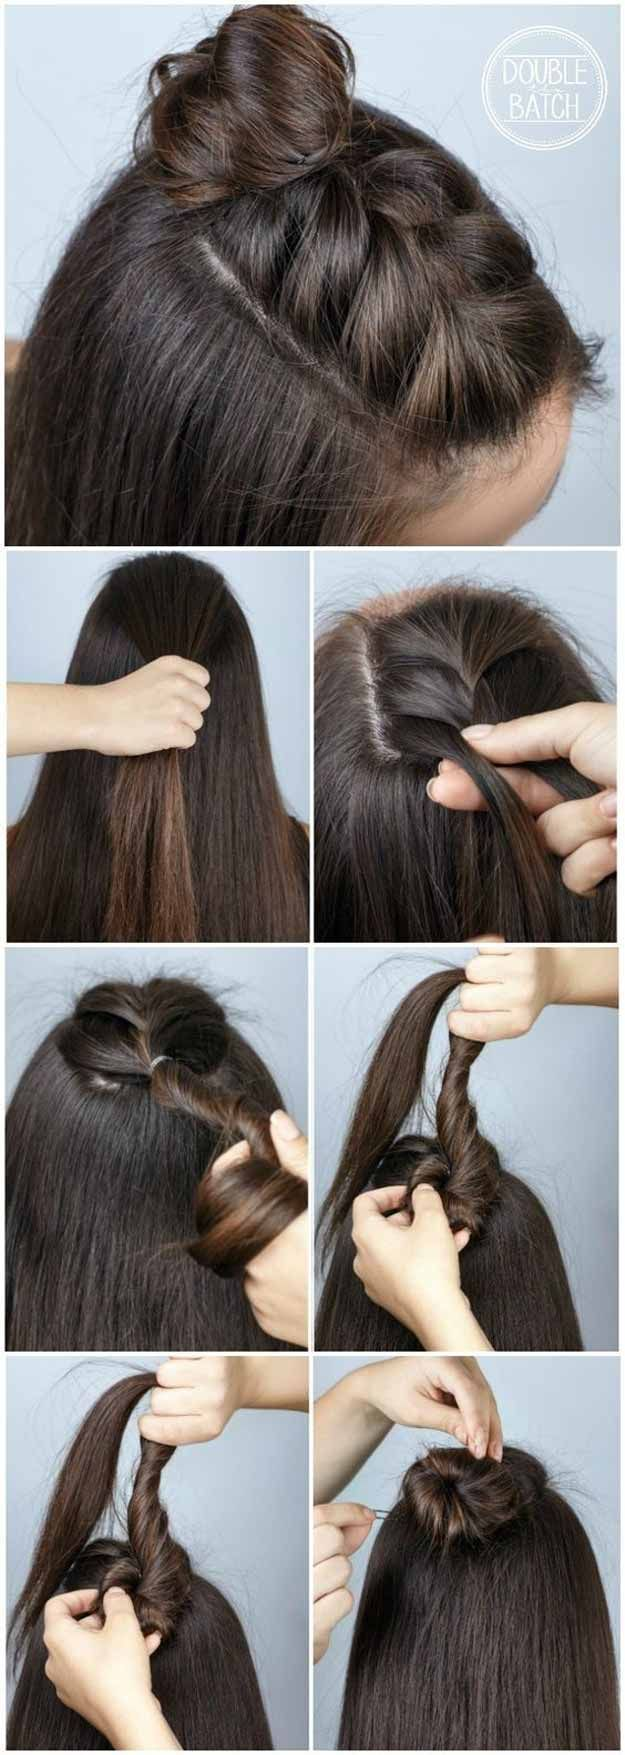 Best Pinterest Hair Tutorials - Half Braid Tutorial - Check Out These Super Cute And Super Simple Hairstyles From The Best Pinterest Hair Tutorials Including Styles Like Messy Buns And Half Up Half Down Hairdos. Dutch Braids Are Super Hot Right Now Too. T (diy hair waves short)